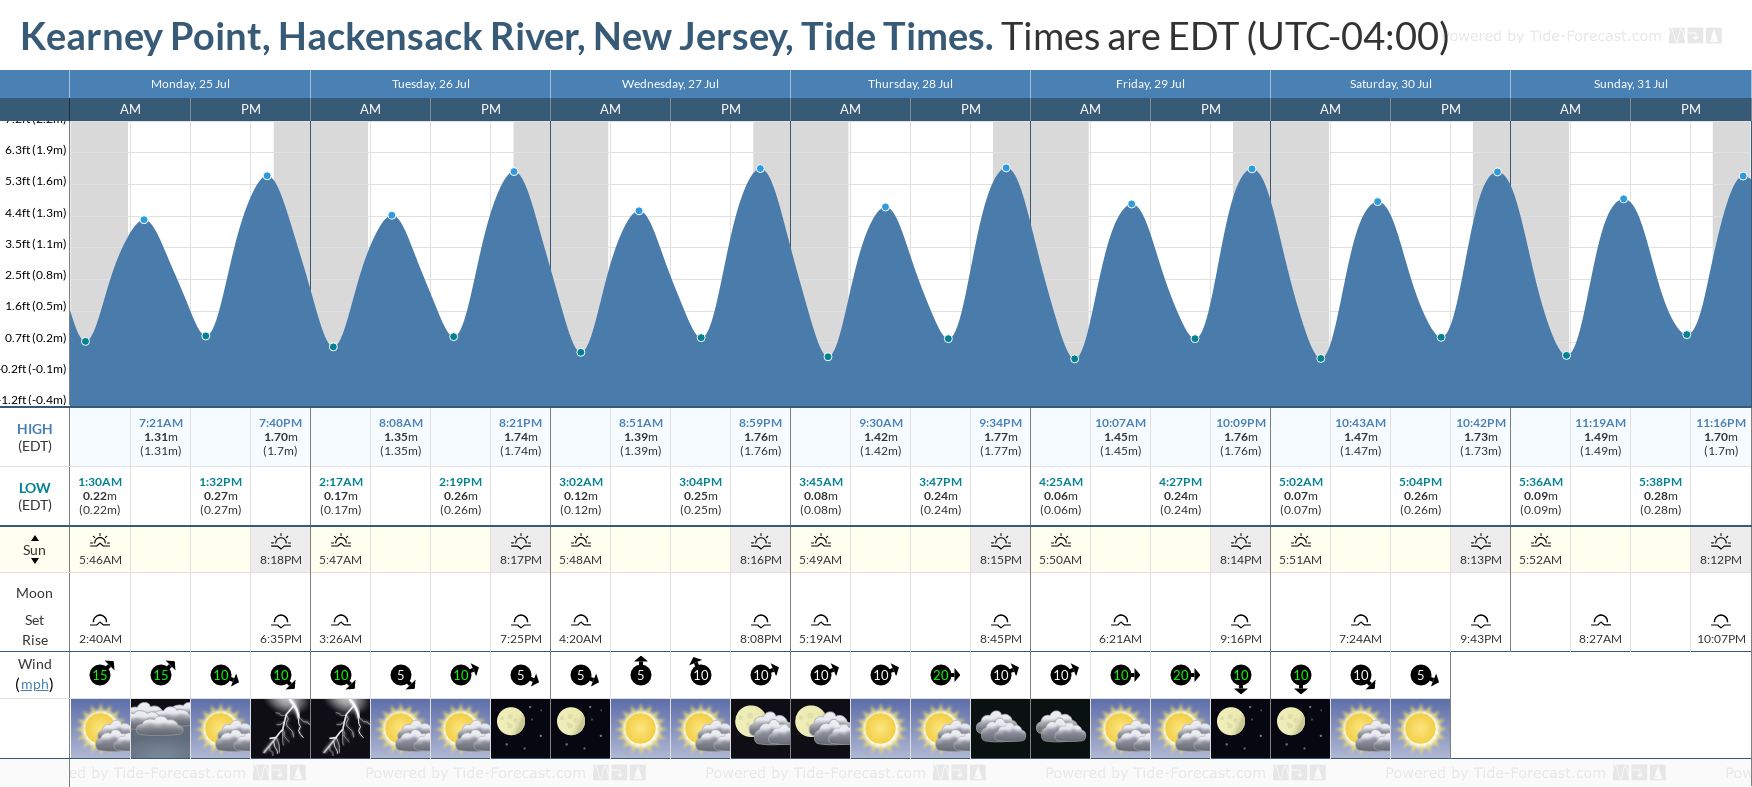 Kearney Point, Hackensack River, New Jersey Tide Chart including high and low tide tide times for the next 7 days